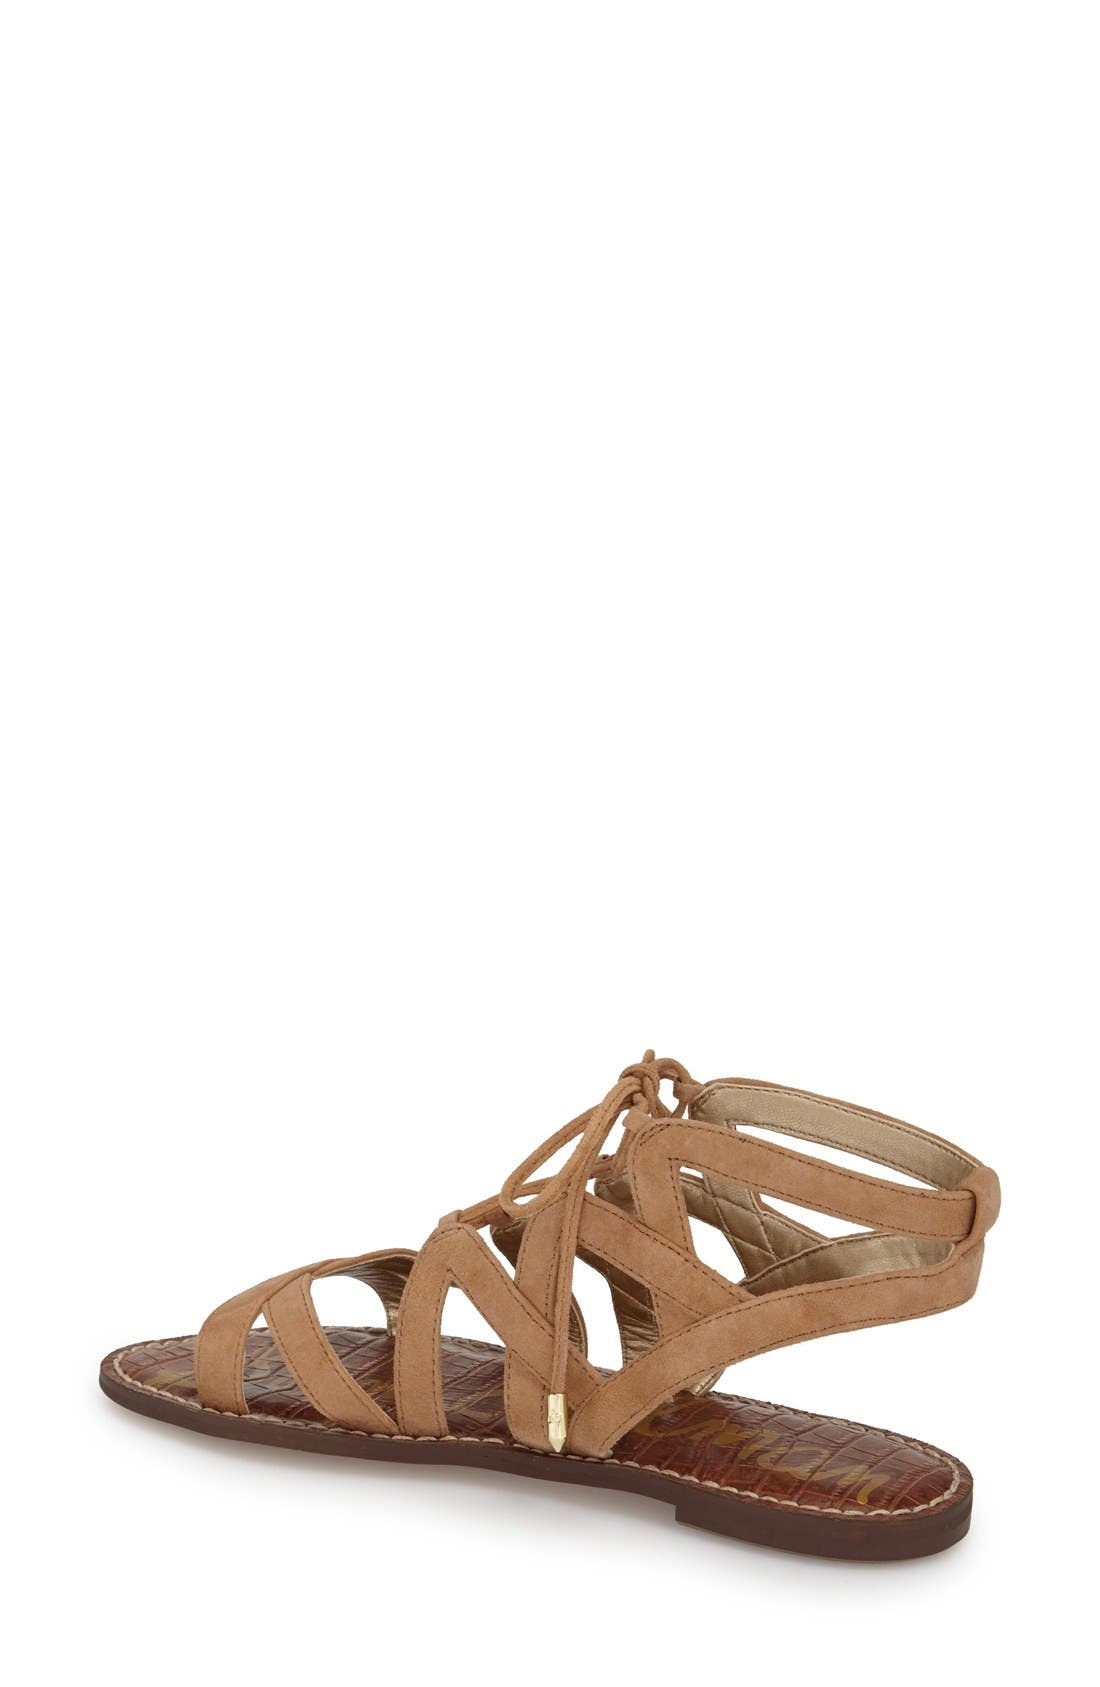 Alternate Image 2  - Sam Edelman 'Gemma' Lace-Up Sandal (Women)